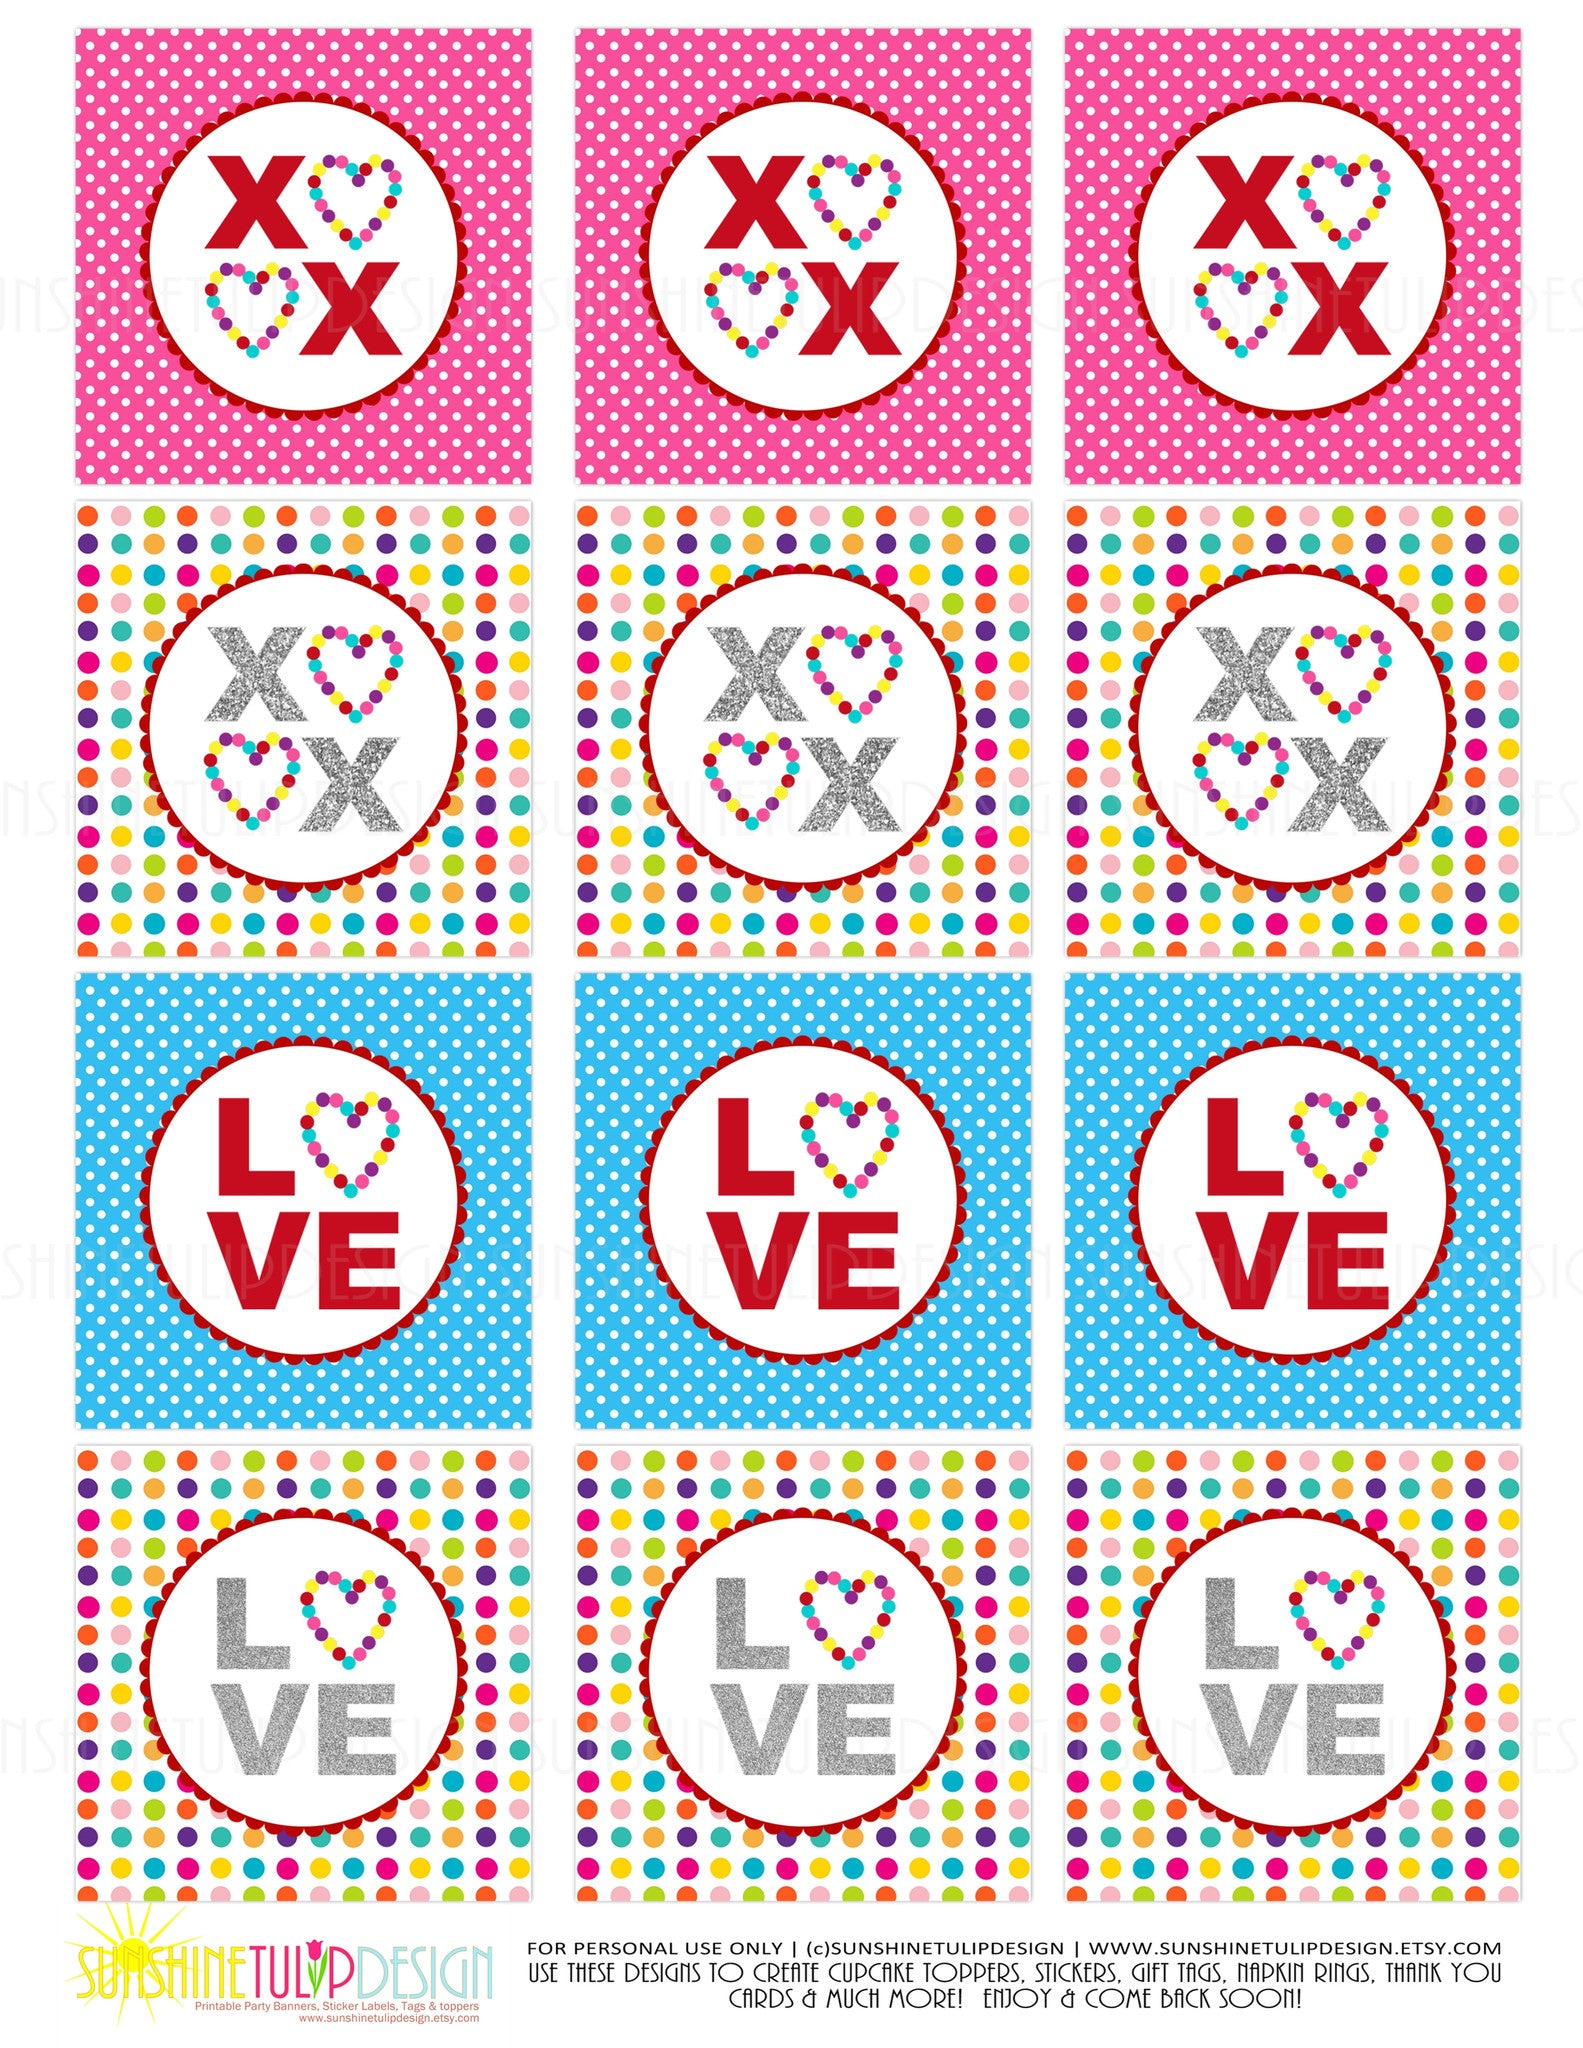 photograph about Valentine Stickers Printable named Printable Valentines Working day XOXO Present Tags Cupcake Toppers, Printable Take pleasure in Present Tags Cupcake Toppers via SUNSHINETULIPDESIGN